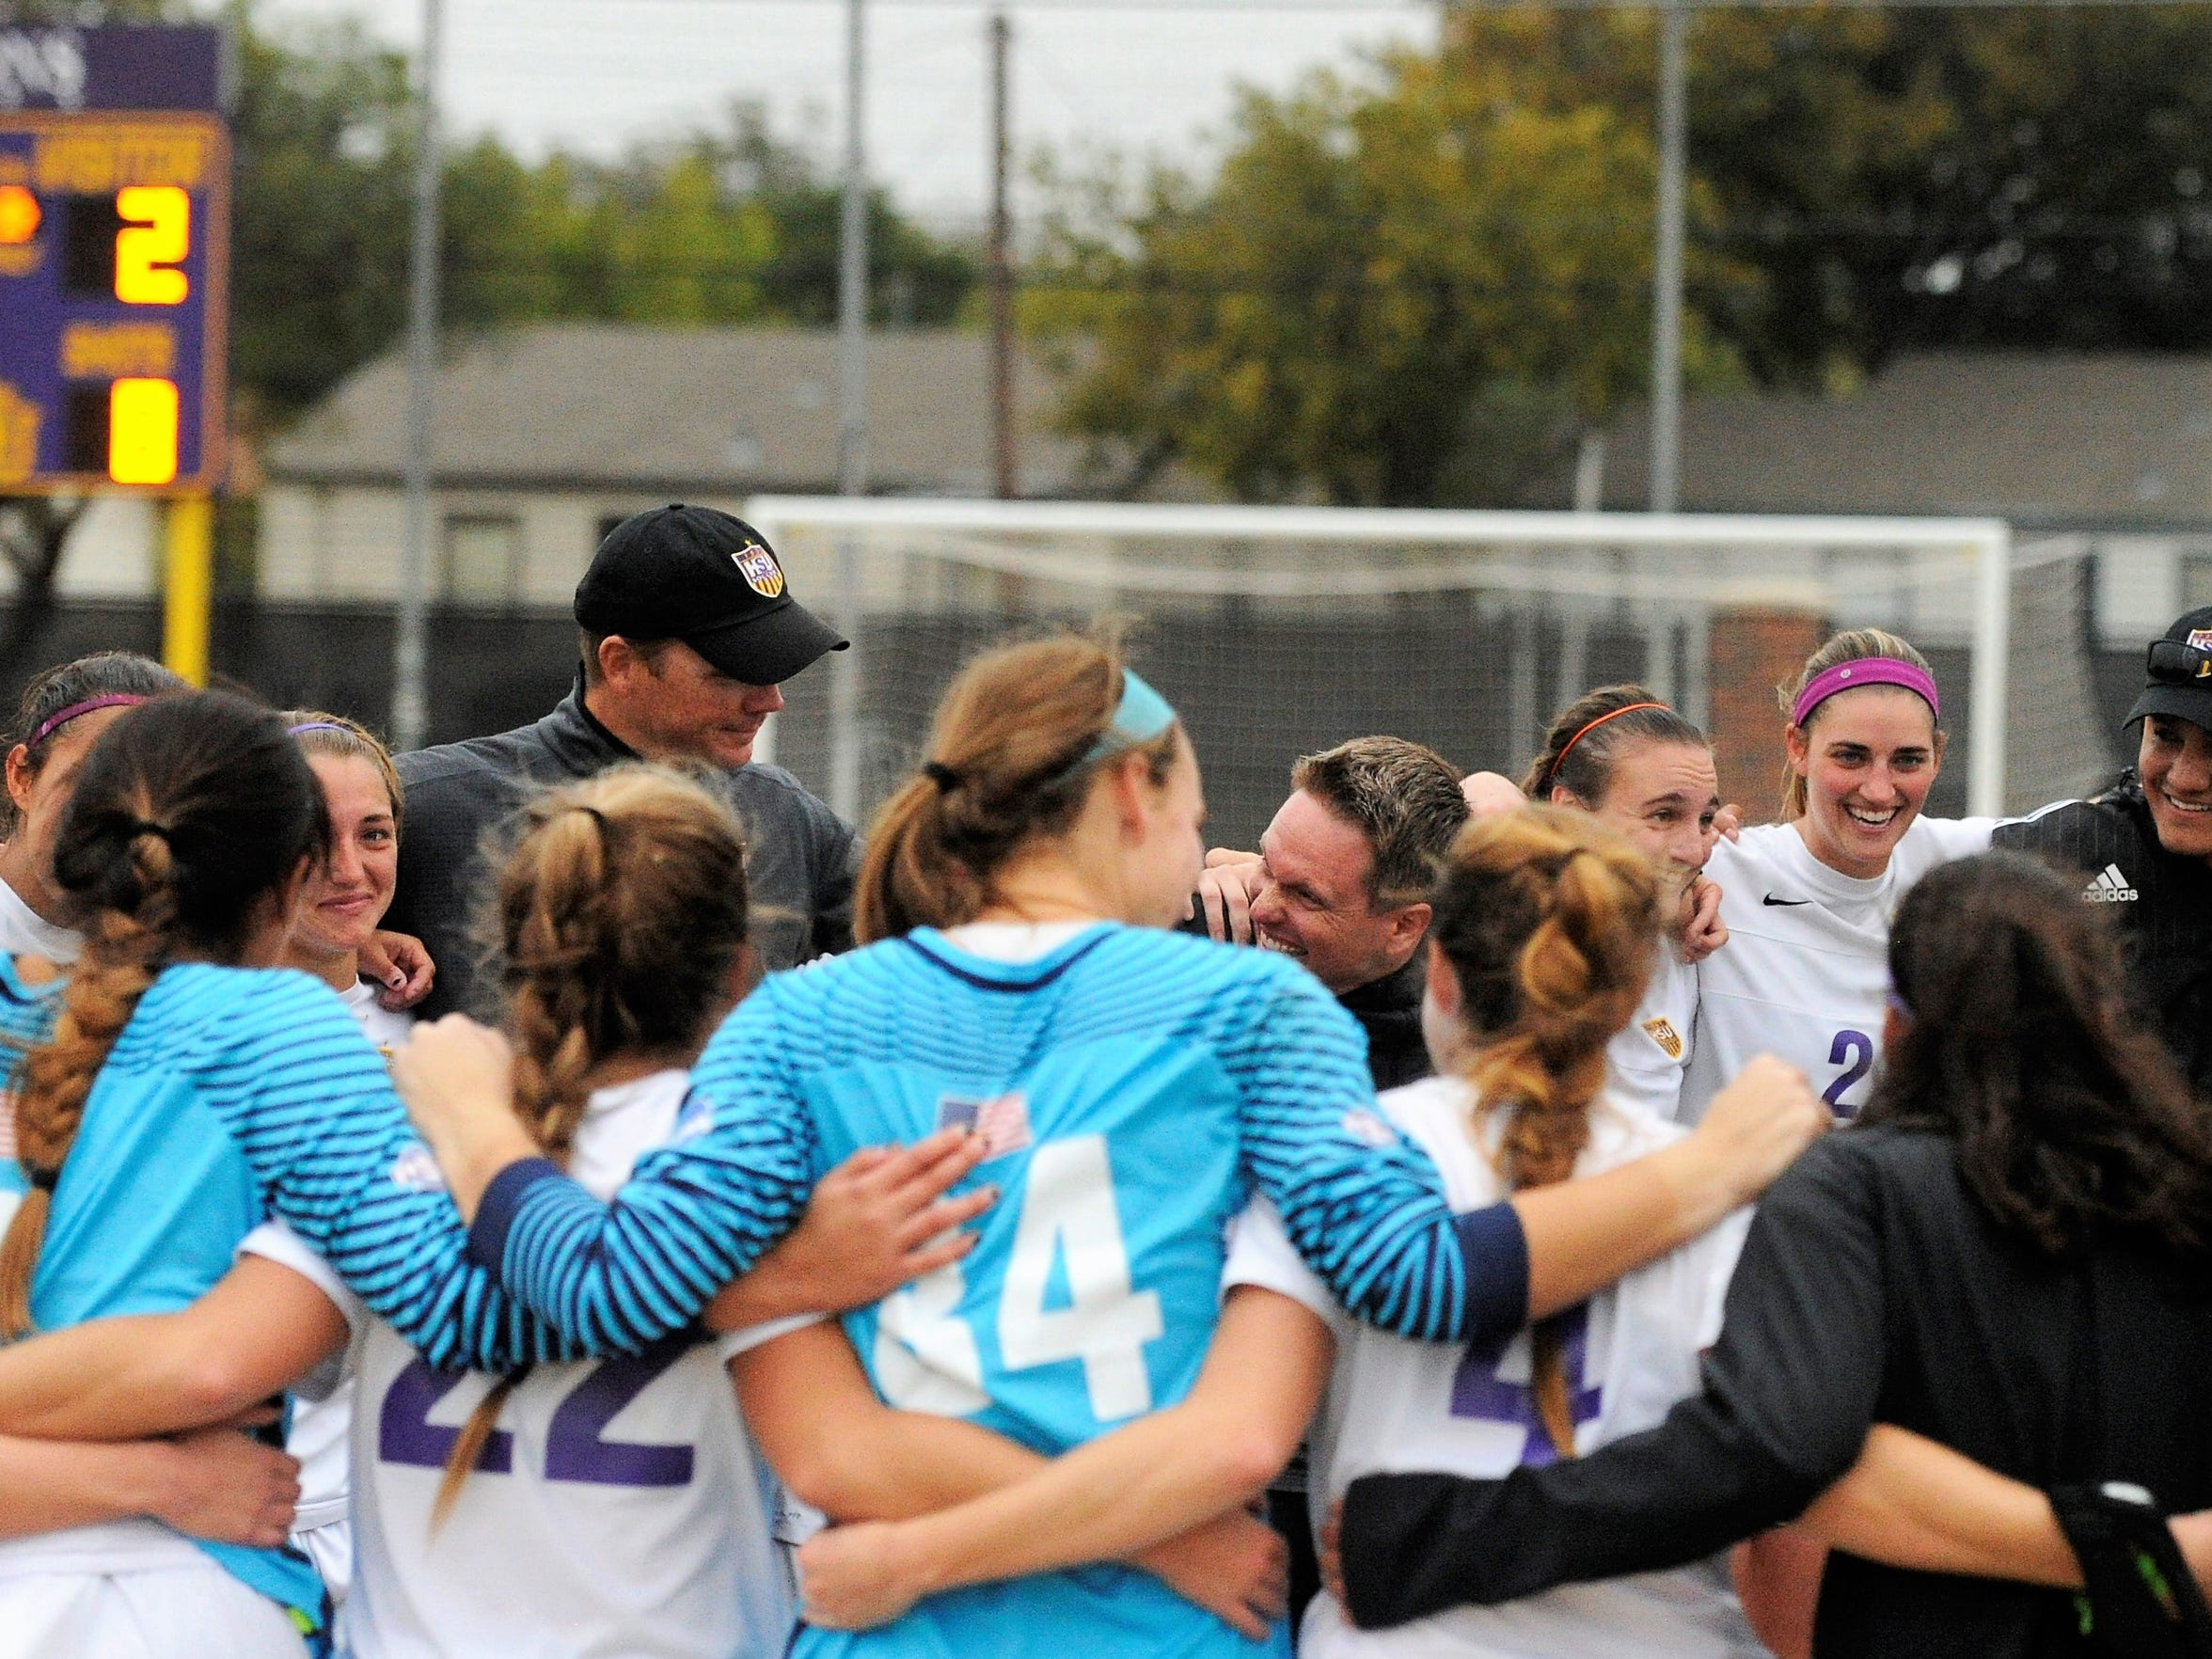 Hardin-Simmons head coach Marcus Wood talks to his team following an NCAA Division III second round game against Trinity. The No. 3 Cowgirls scored twice in the final 10 minutes to win 3-2.